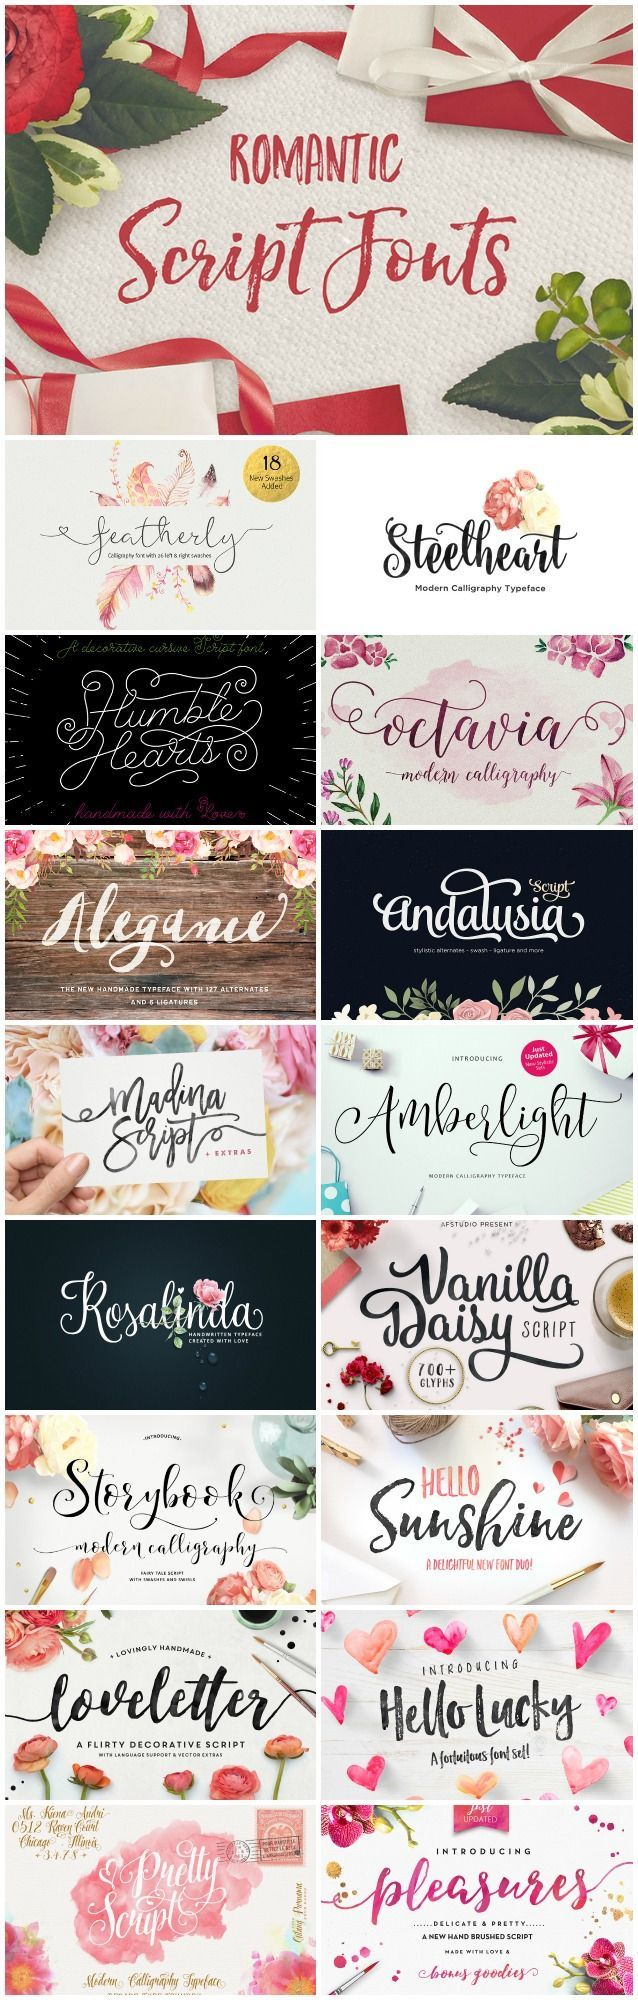 30 Romantic Script Fonts for Valentine's Day and Beyond | Looking for a delicate, script font for your next print design project? Whether you're working on a set of custom Valentine's Day cards for